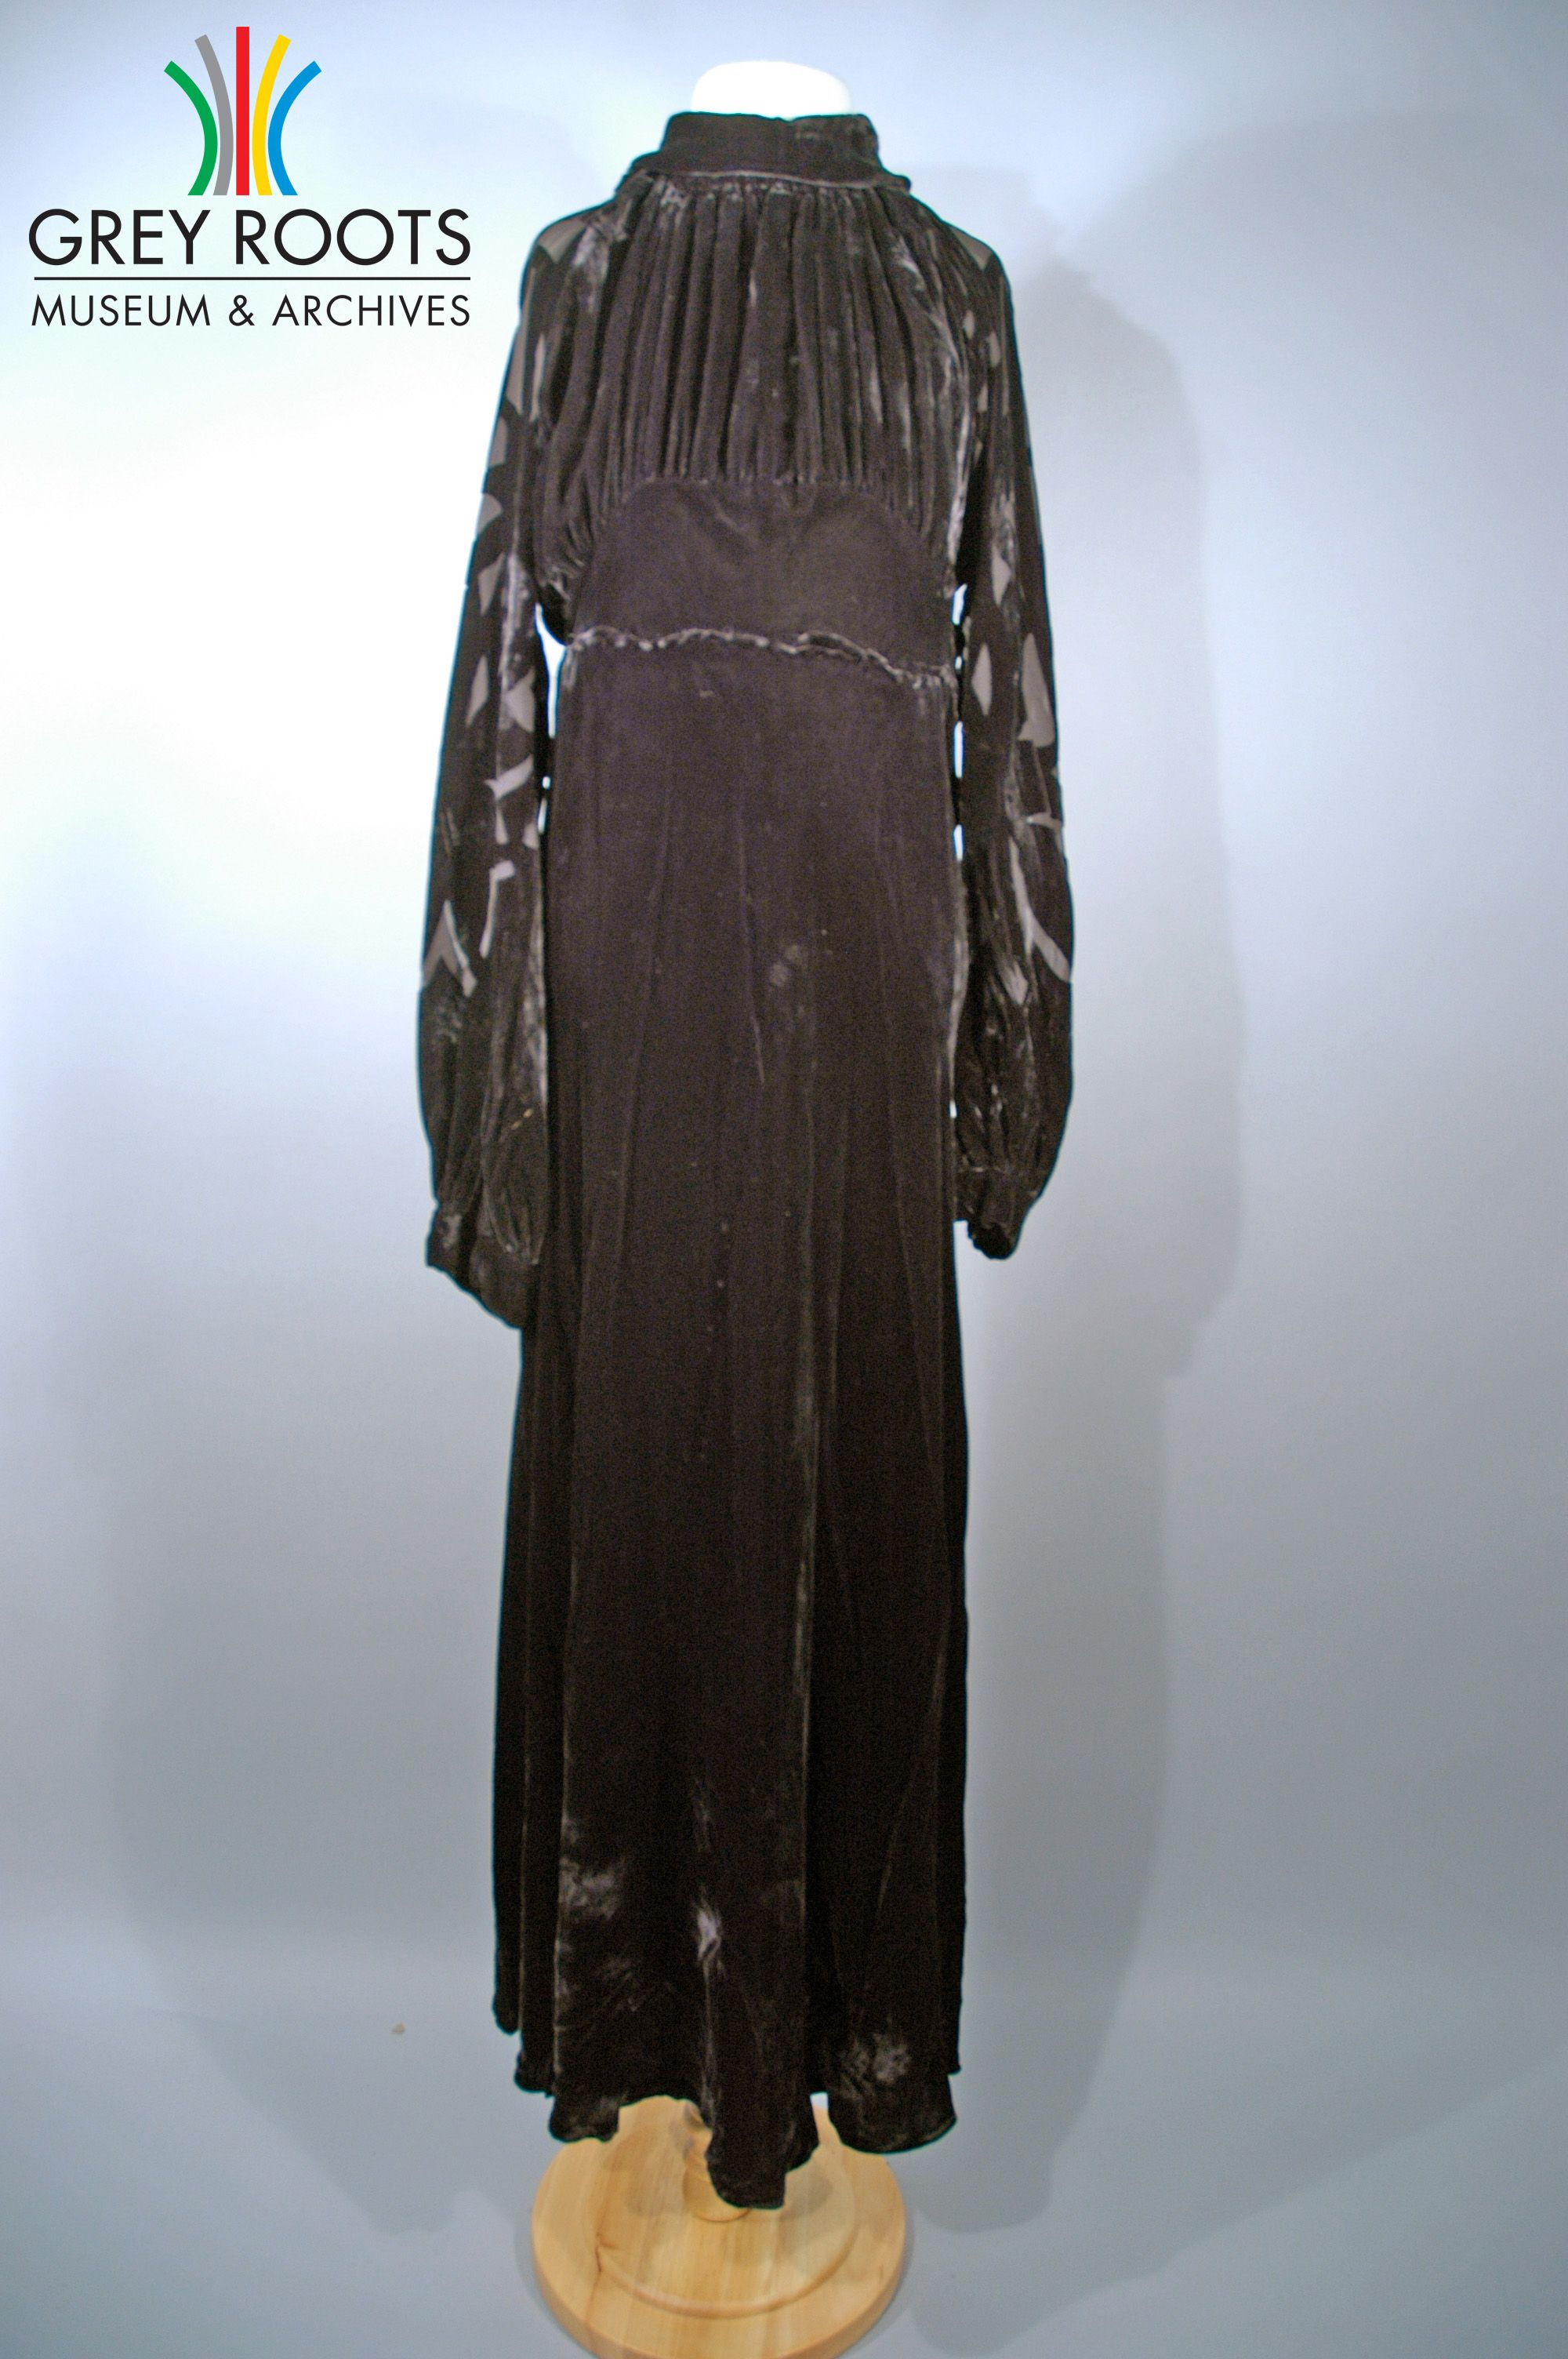 A black velvet dress with long sleeves grey roots museum u archives